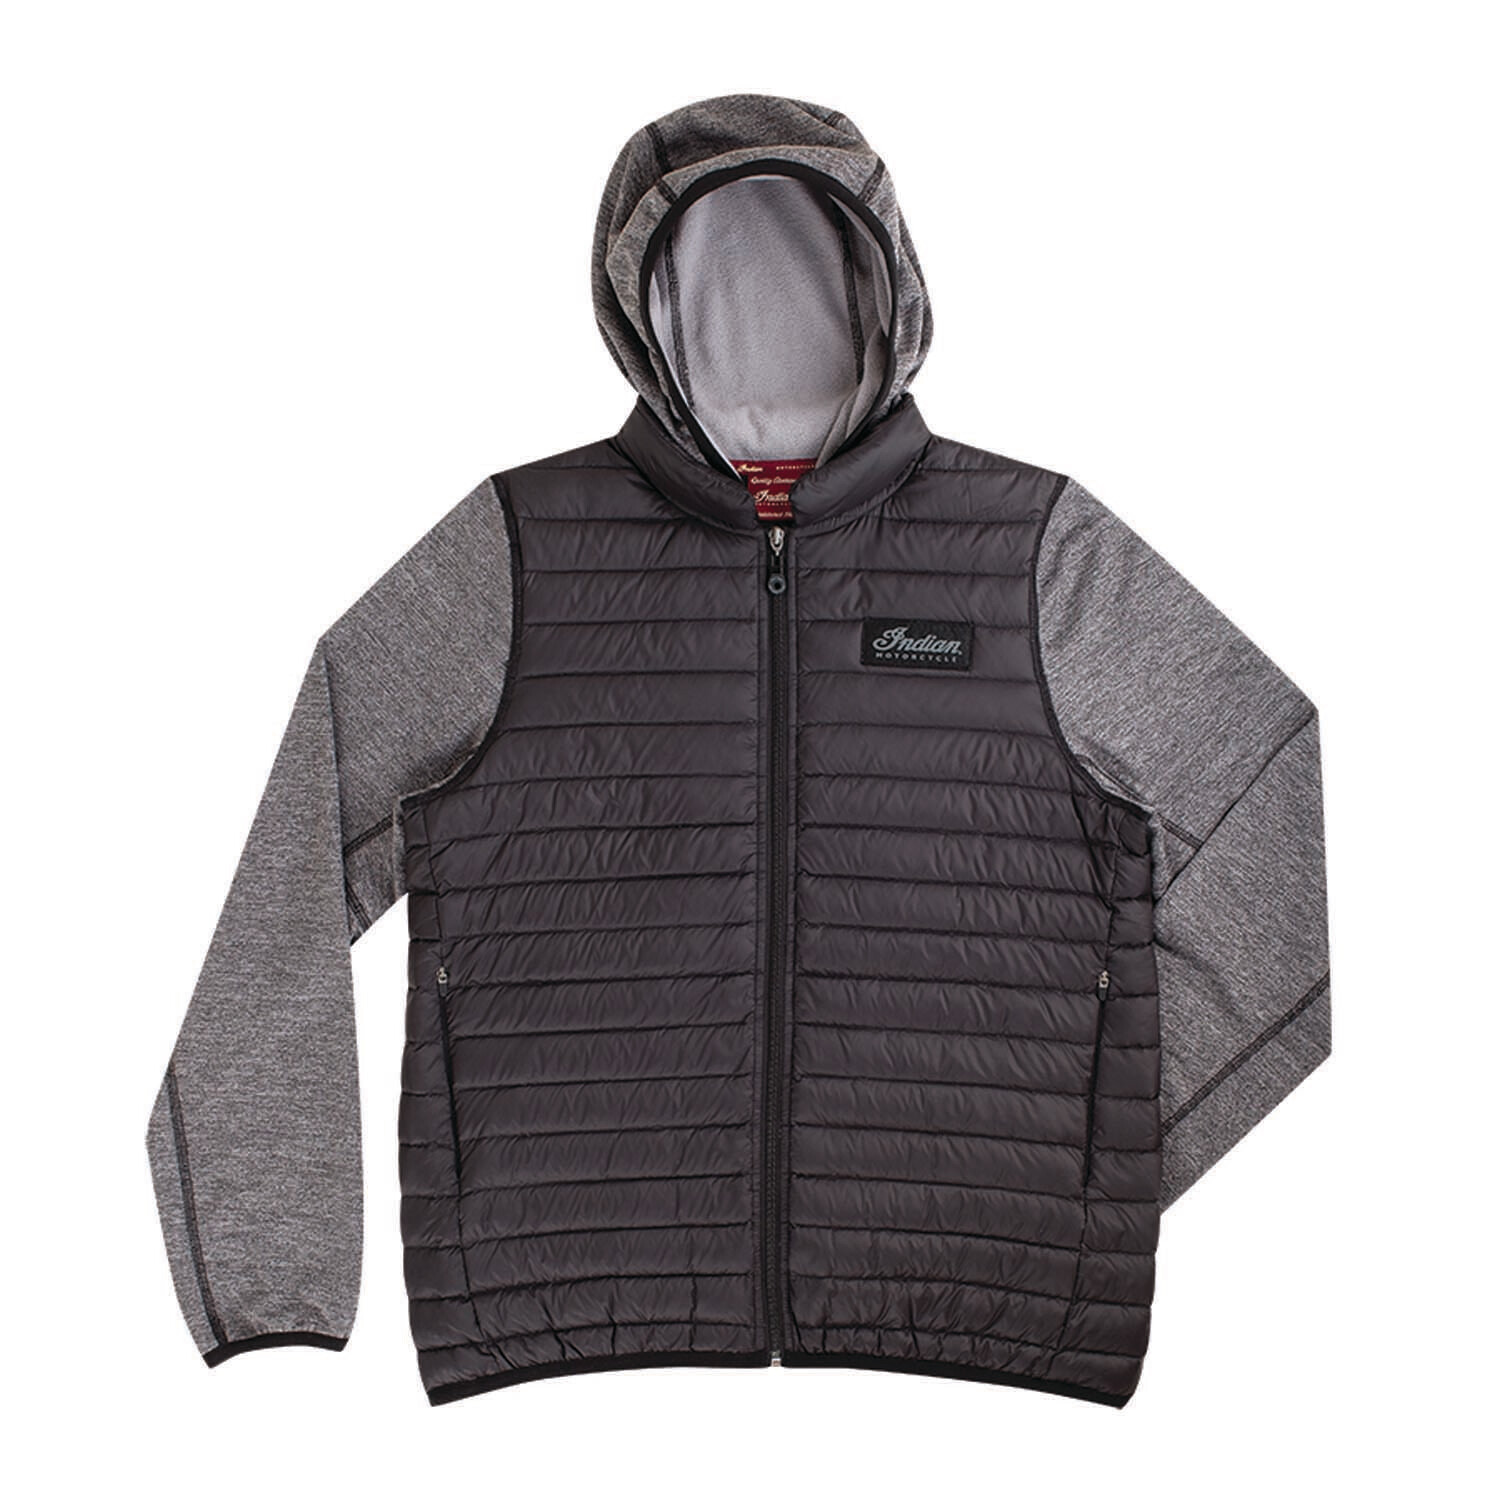 IMC QUILTED HOODIE